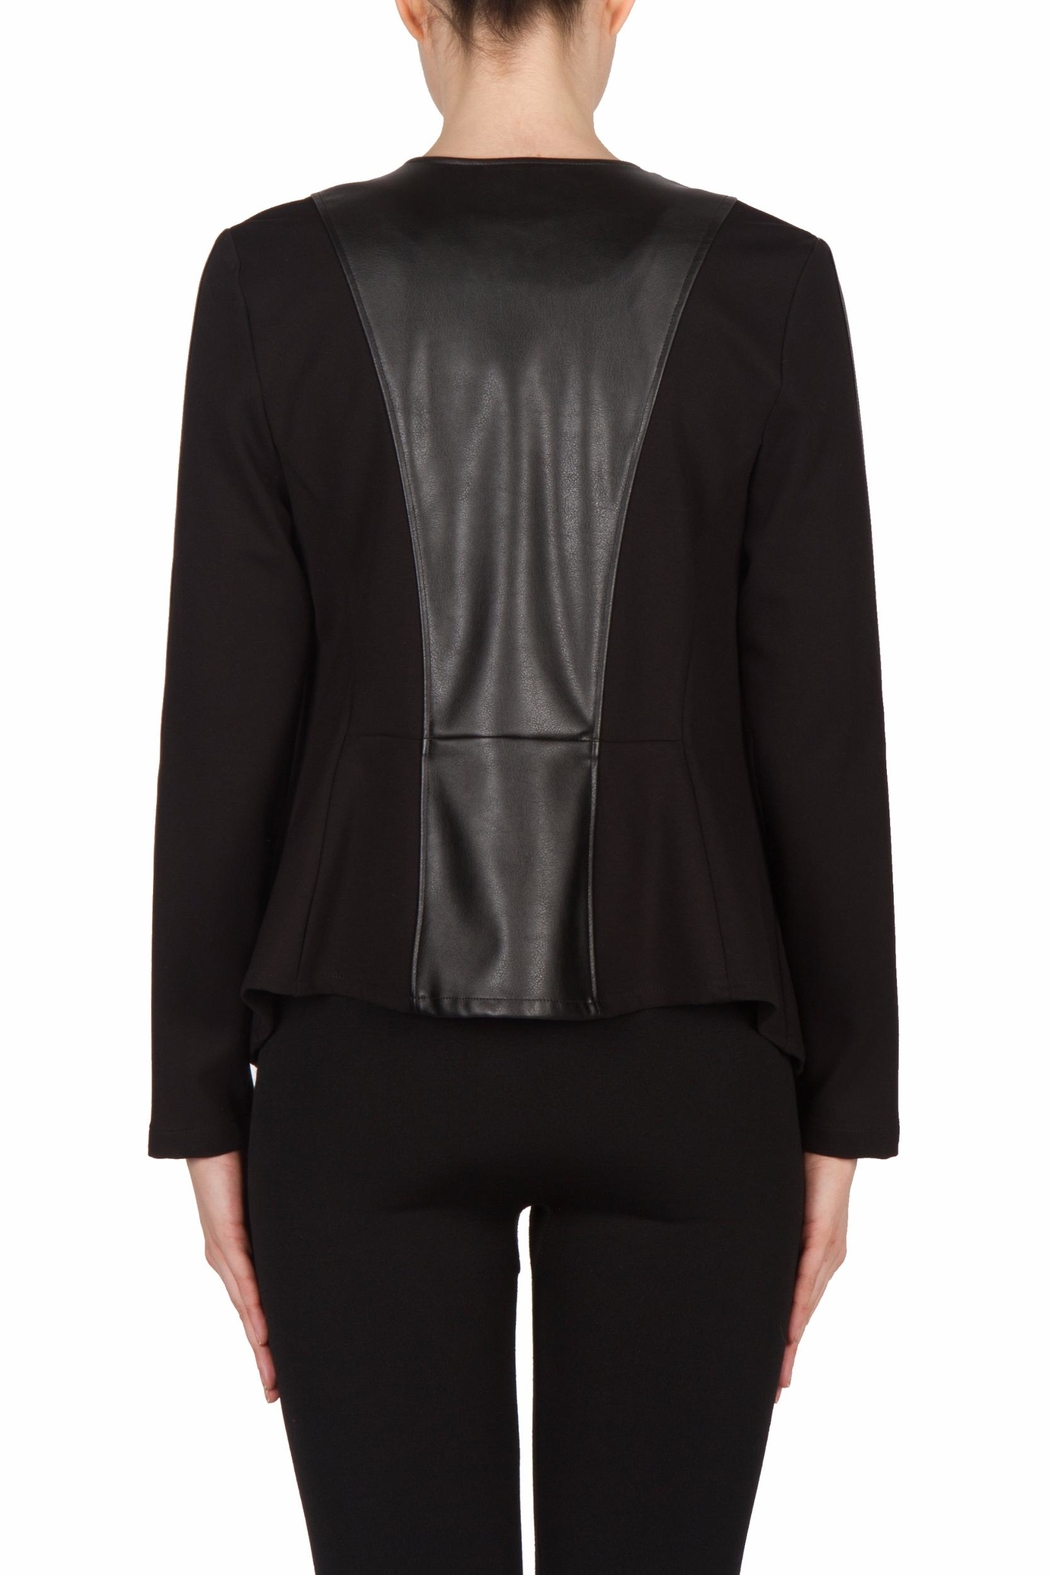 Joseph Ribkoff Leatherette Trimmed Jacket - Side Cropped Image